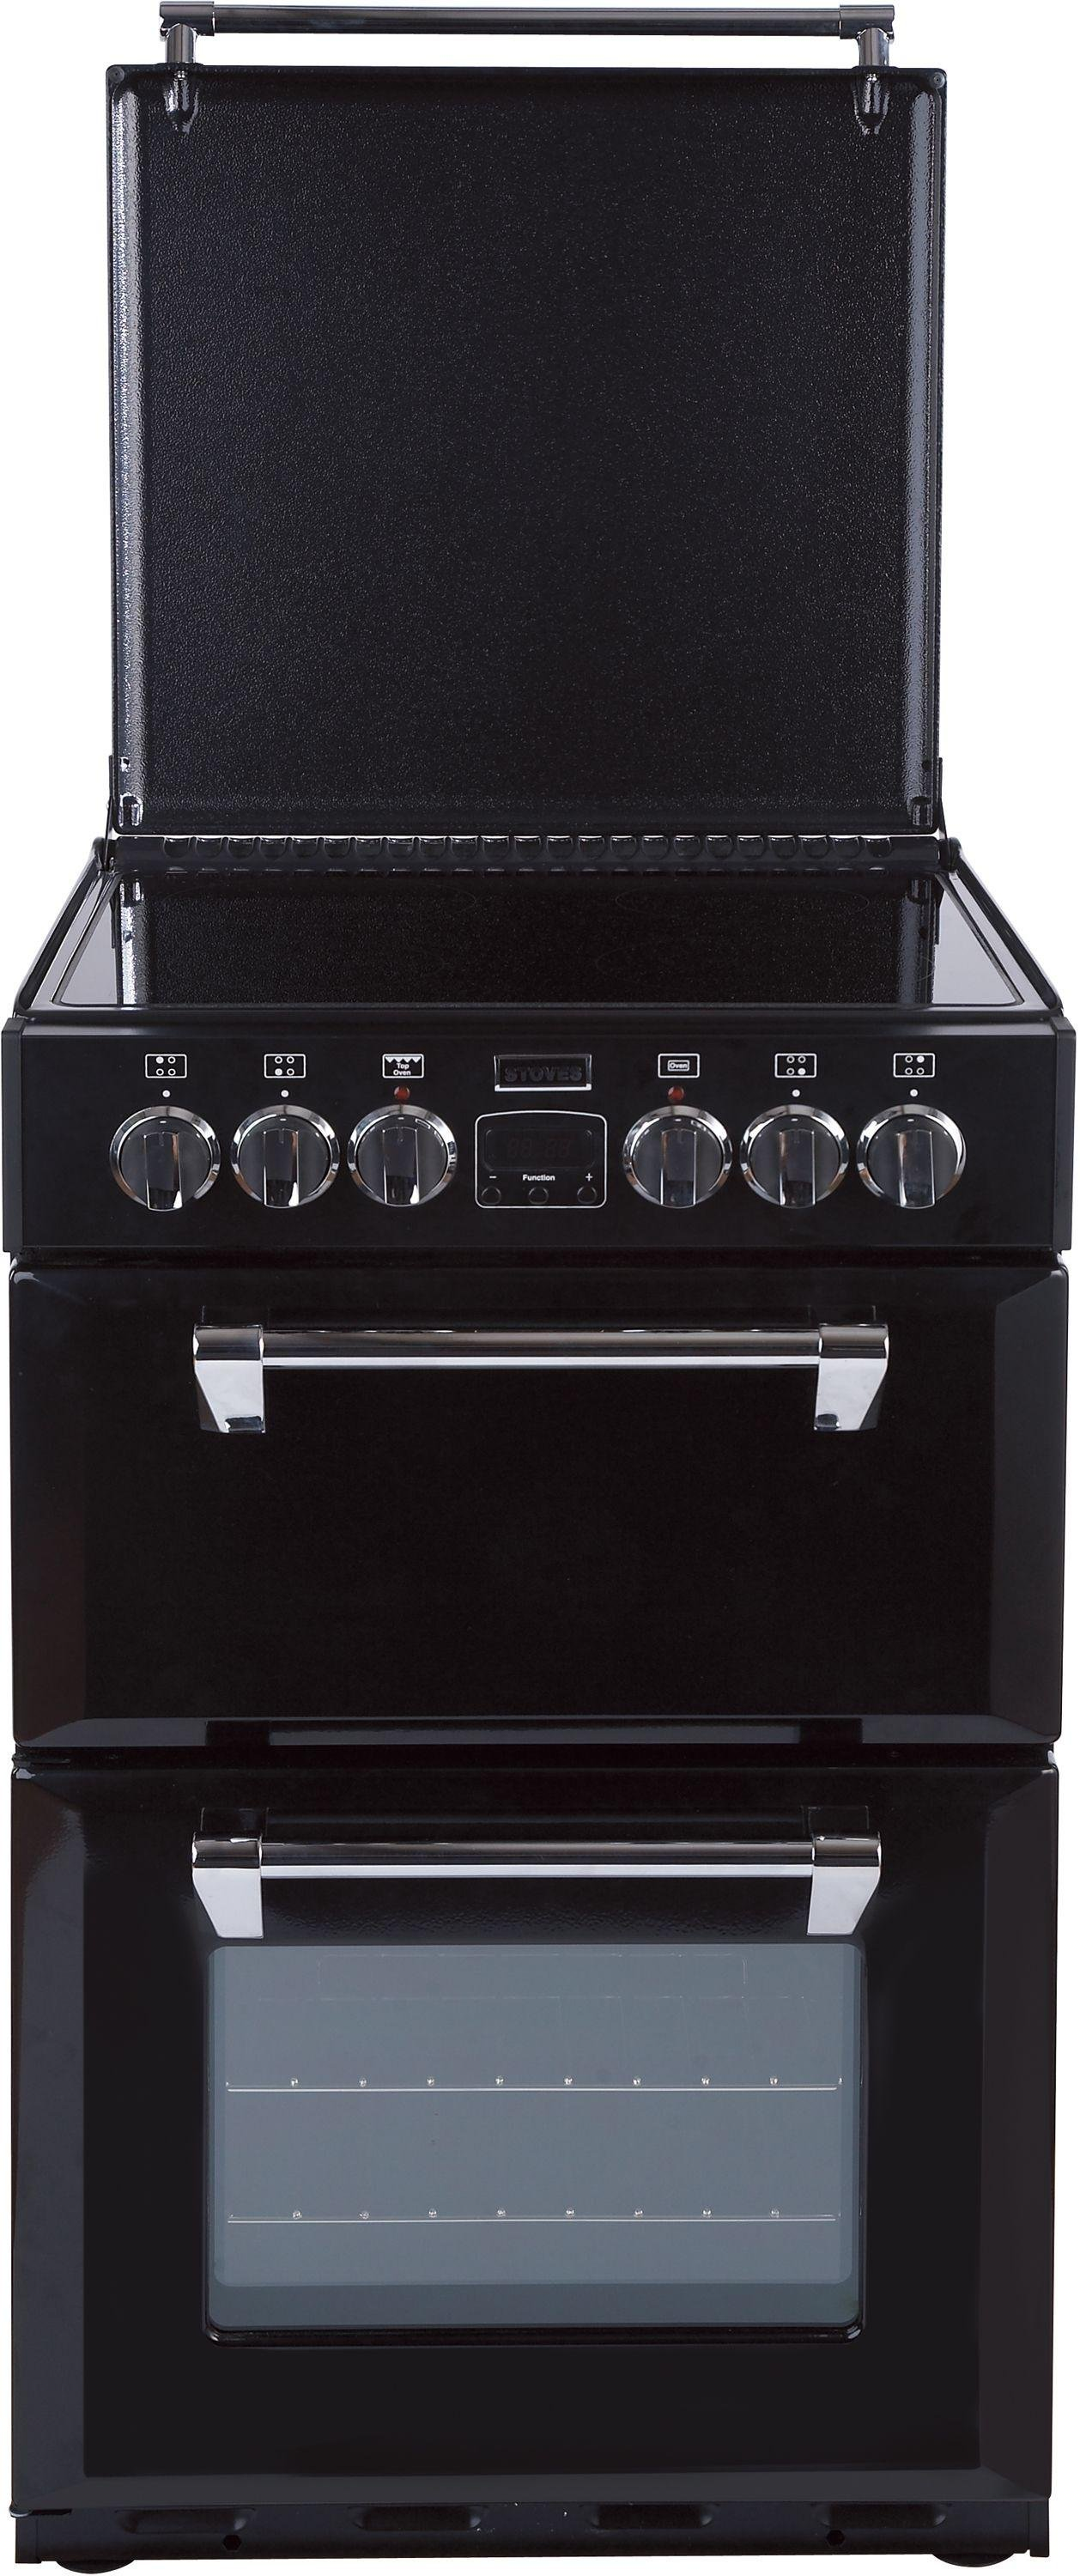 Stoves Richmond 550E MiniRange Double Cooker - Black